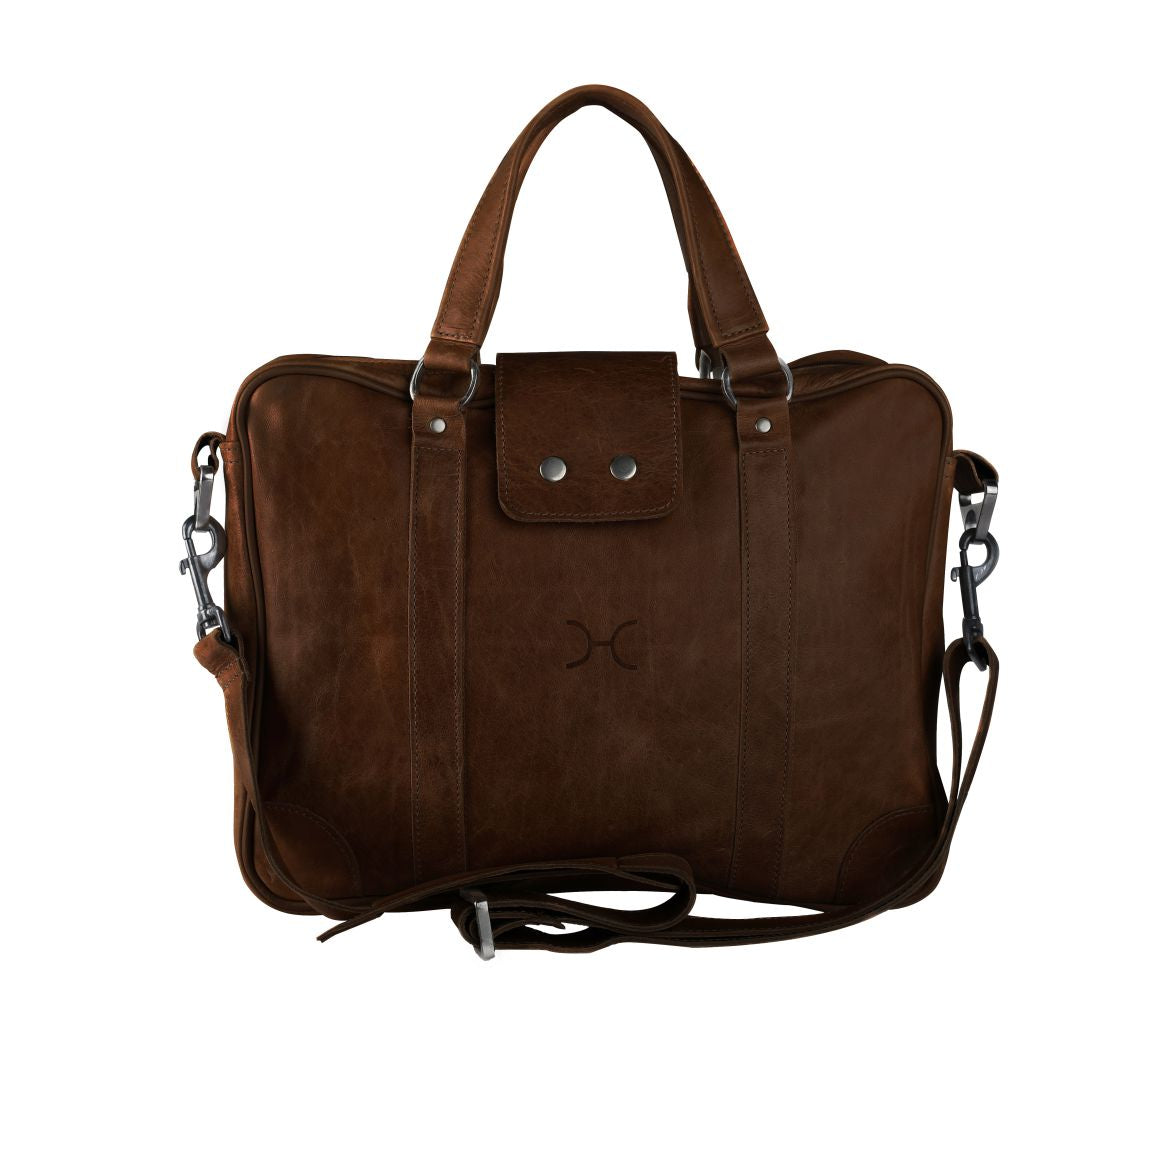 Thandana Laptop Bag - Brown - Zufrique Boutique